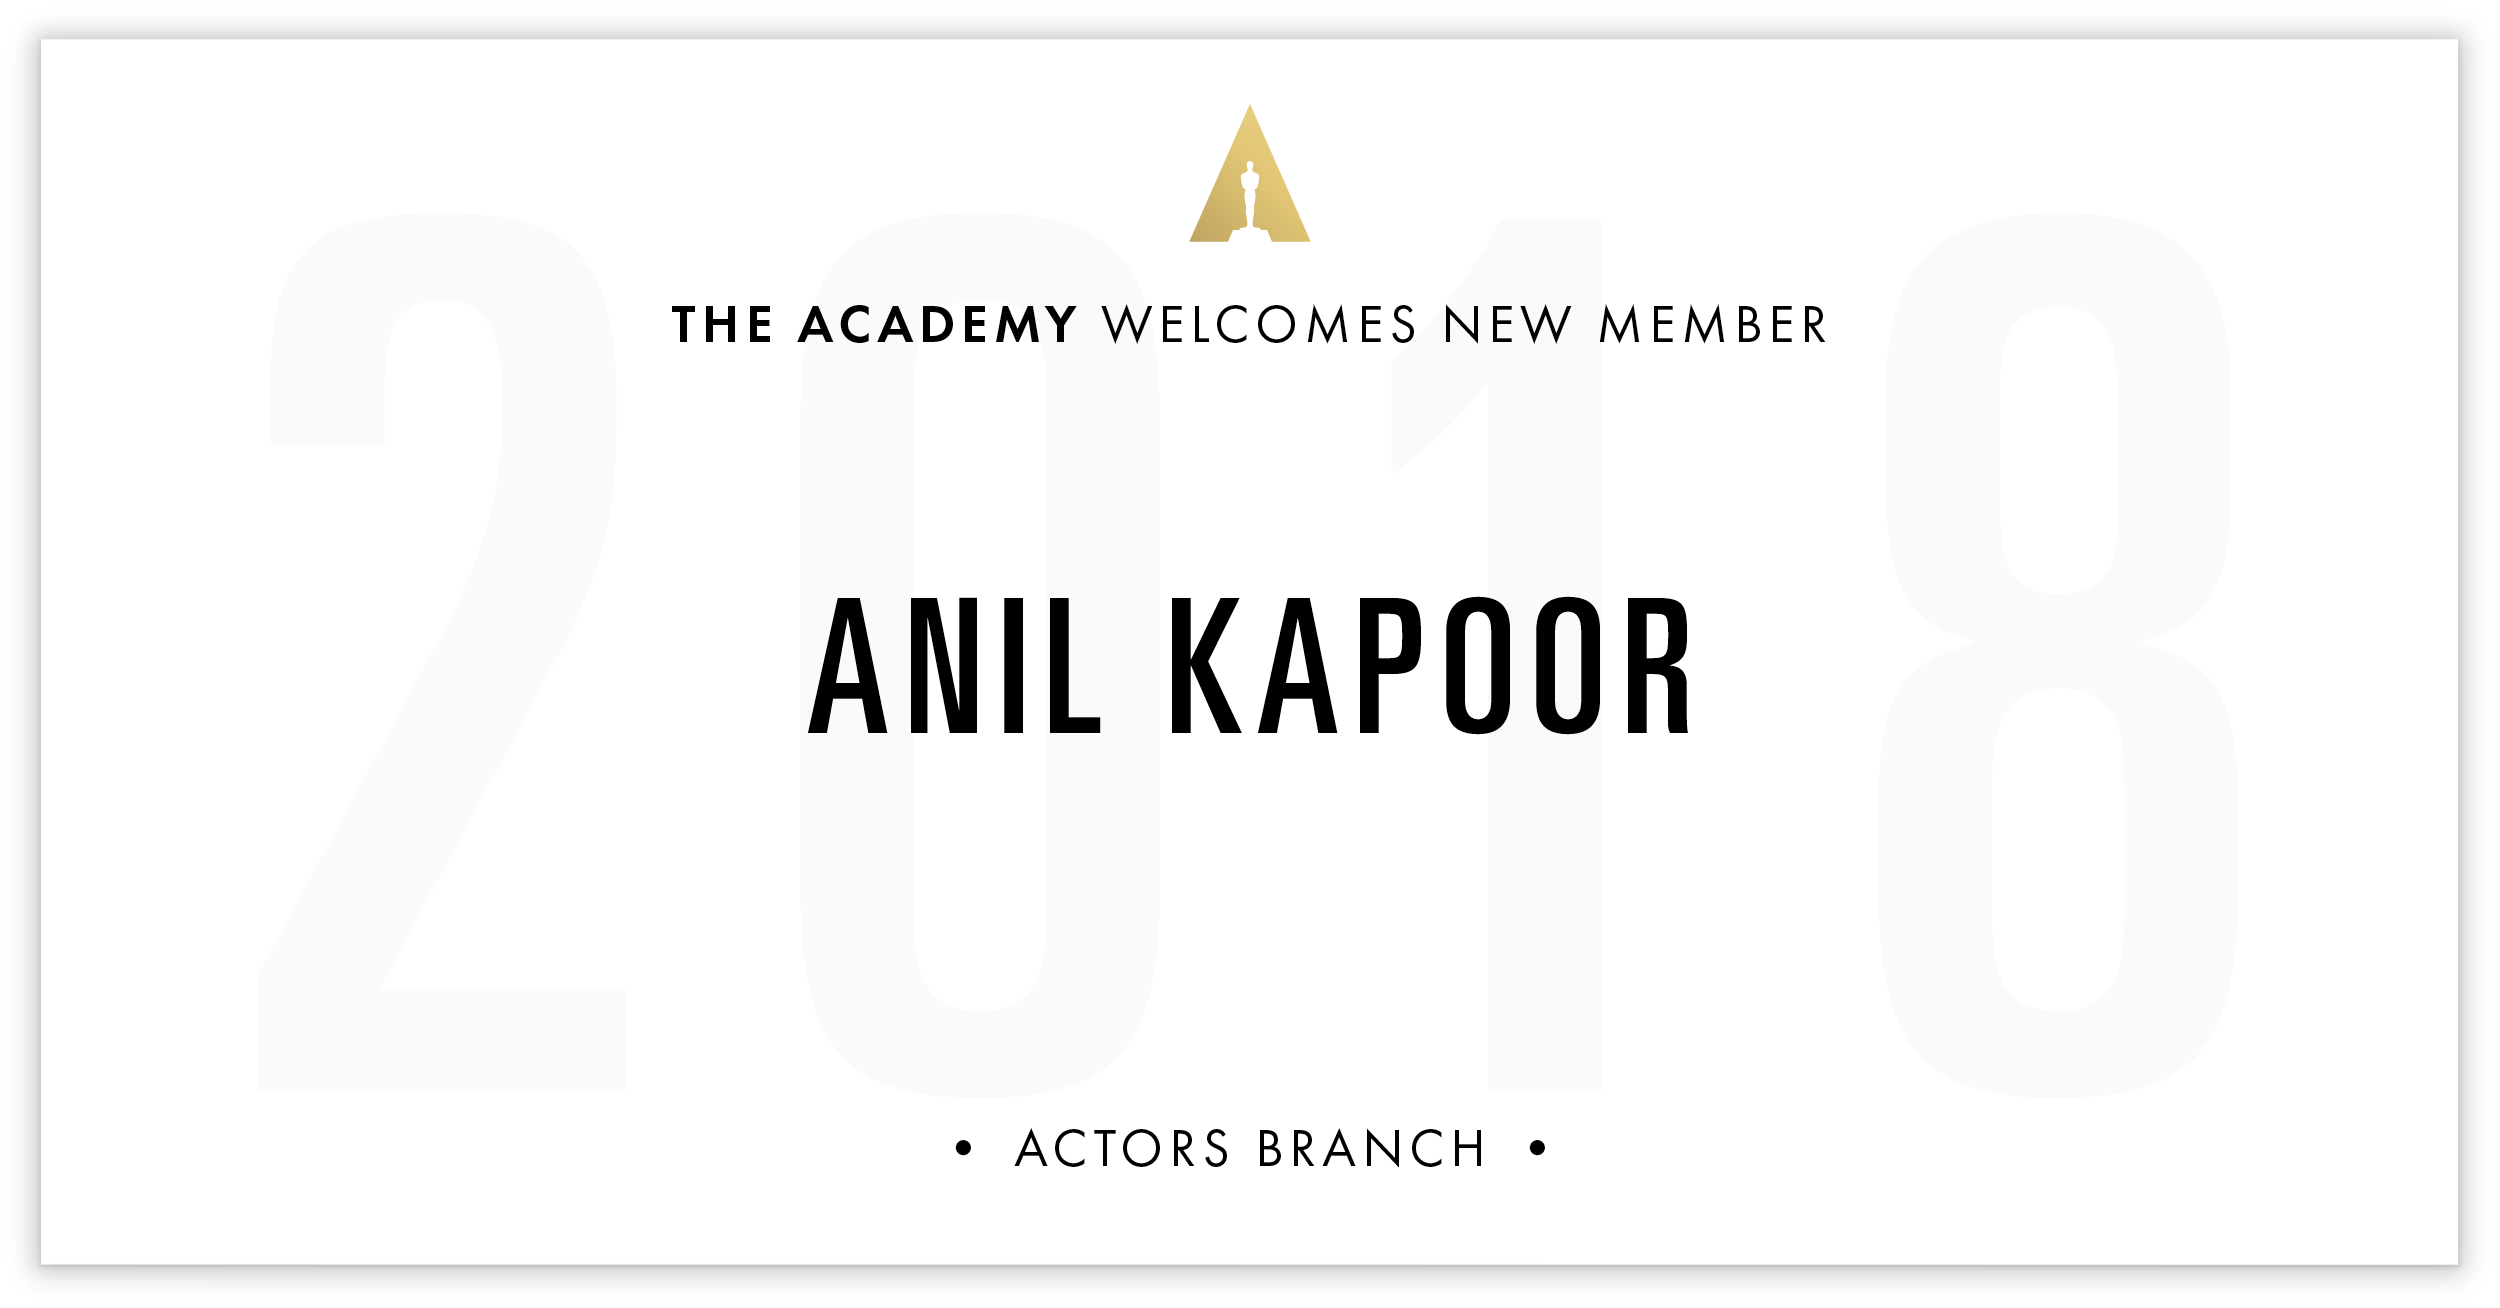 Anil Kapoor is invited!